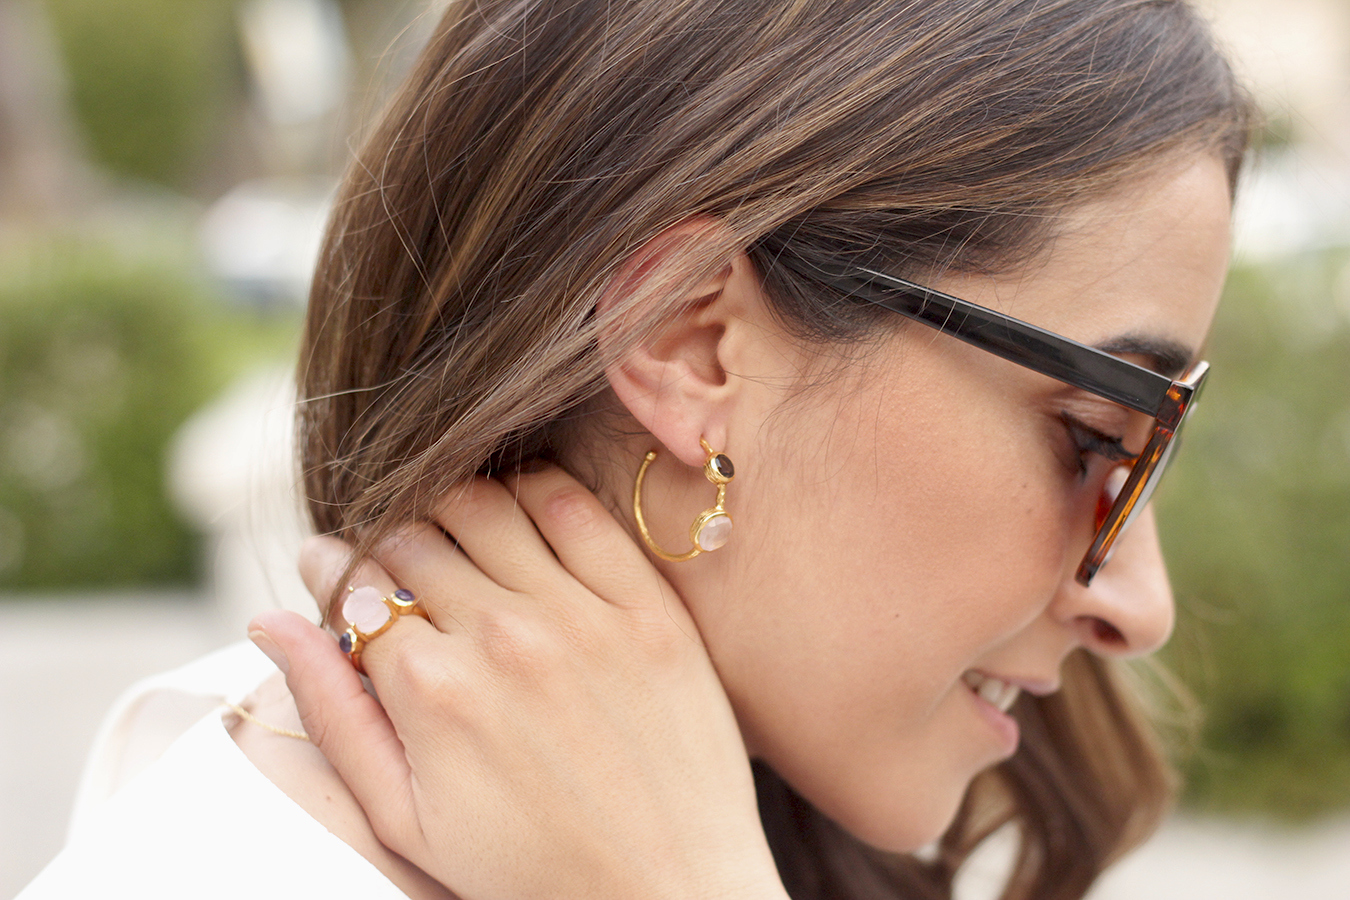 White blouse jeans earrings jewellery corte ingles joyería verano summer outfit style3